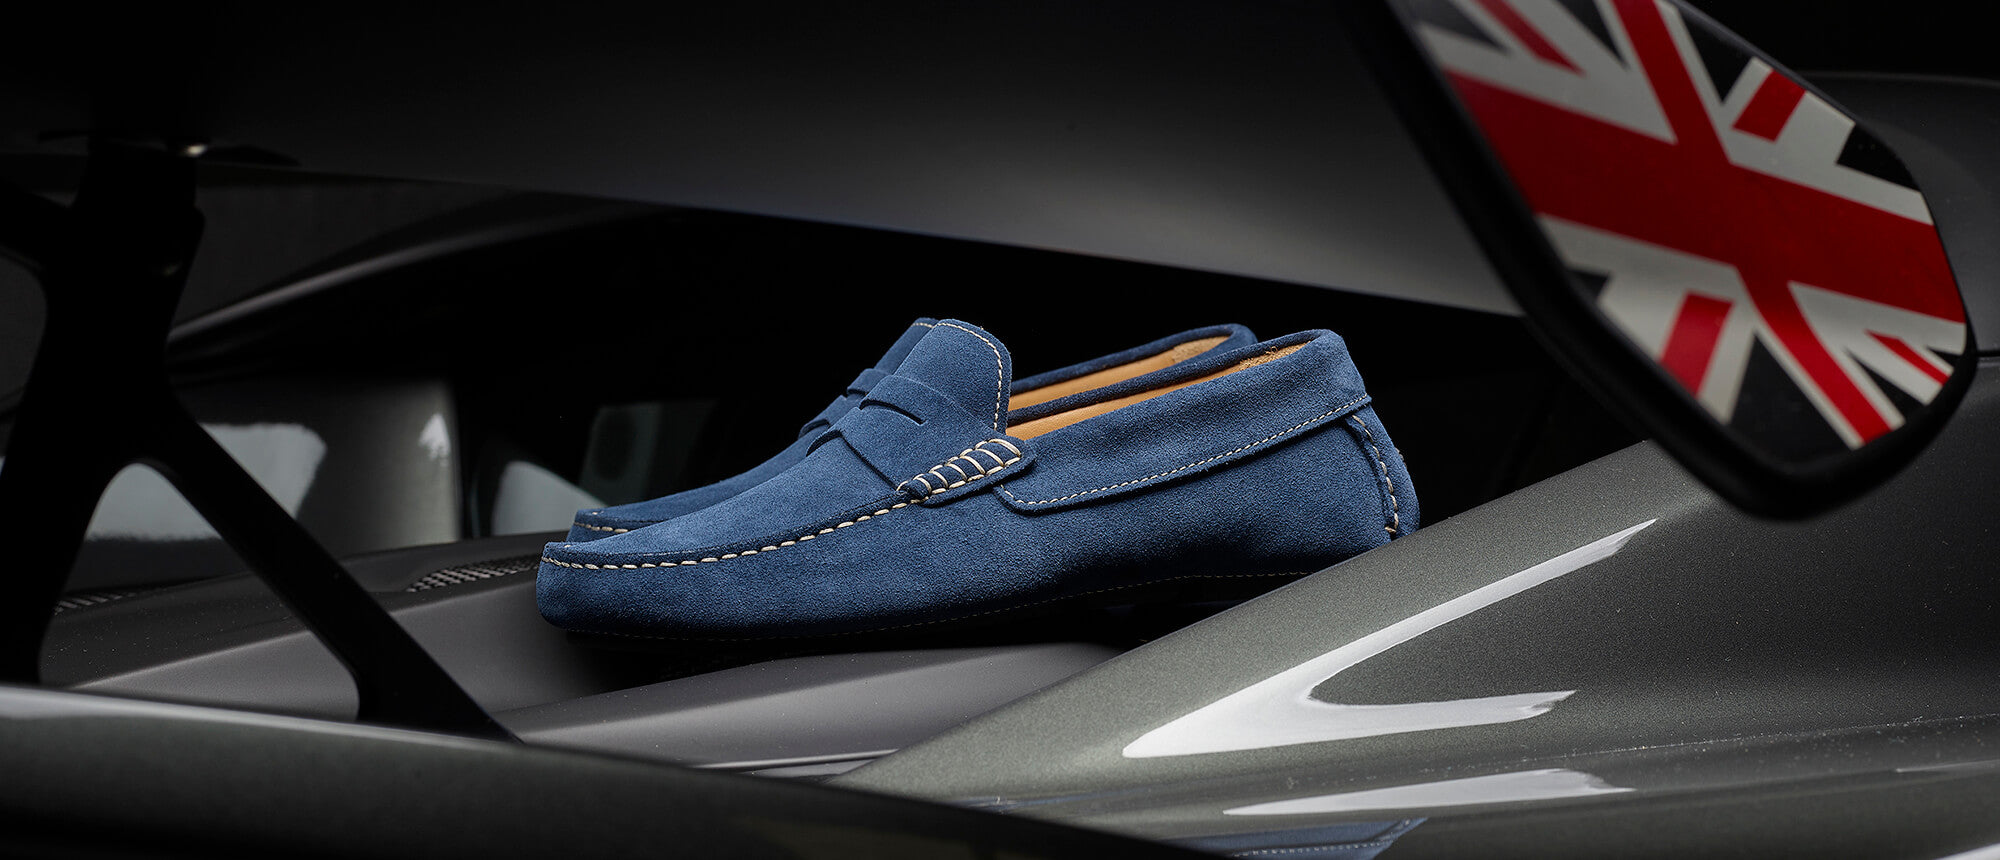 Crockett & Jones - The Driving Shoe